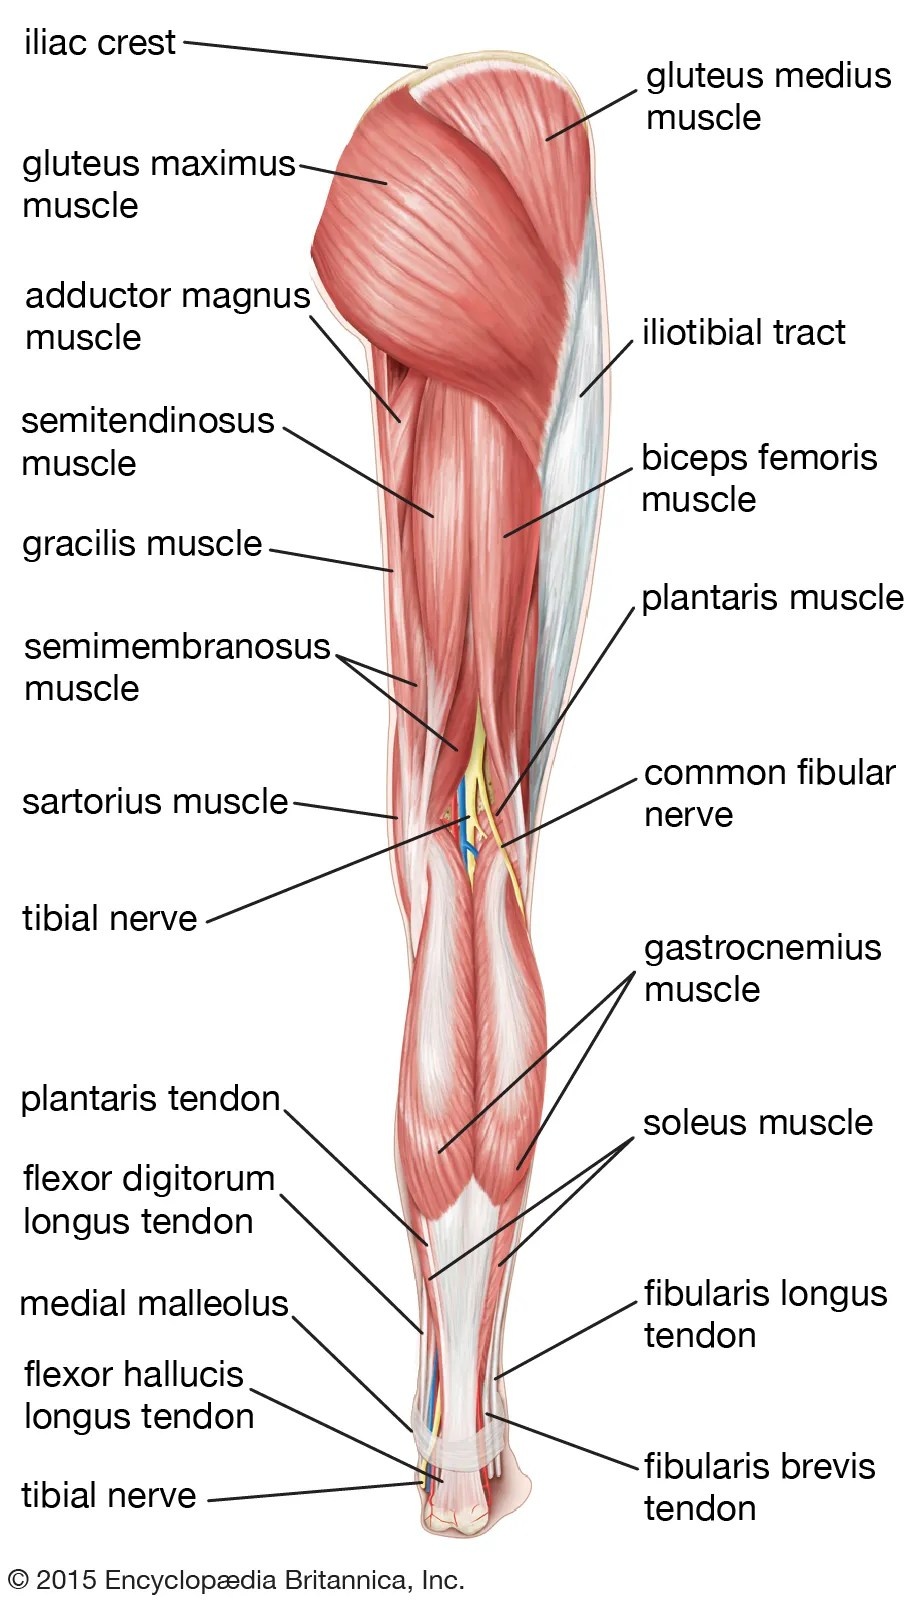 Lower Back And Leg Muscle Diagram : lower, muscle, diagram, Definition,, Bones,, Muscles,, Facts, Britannica